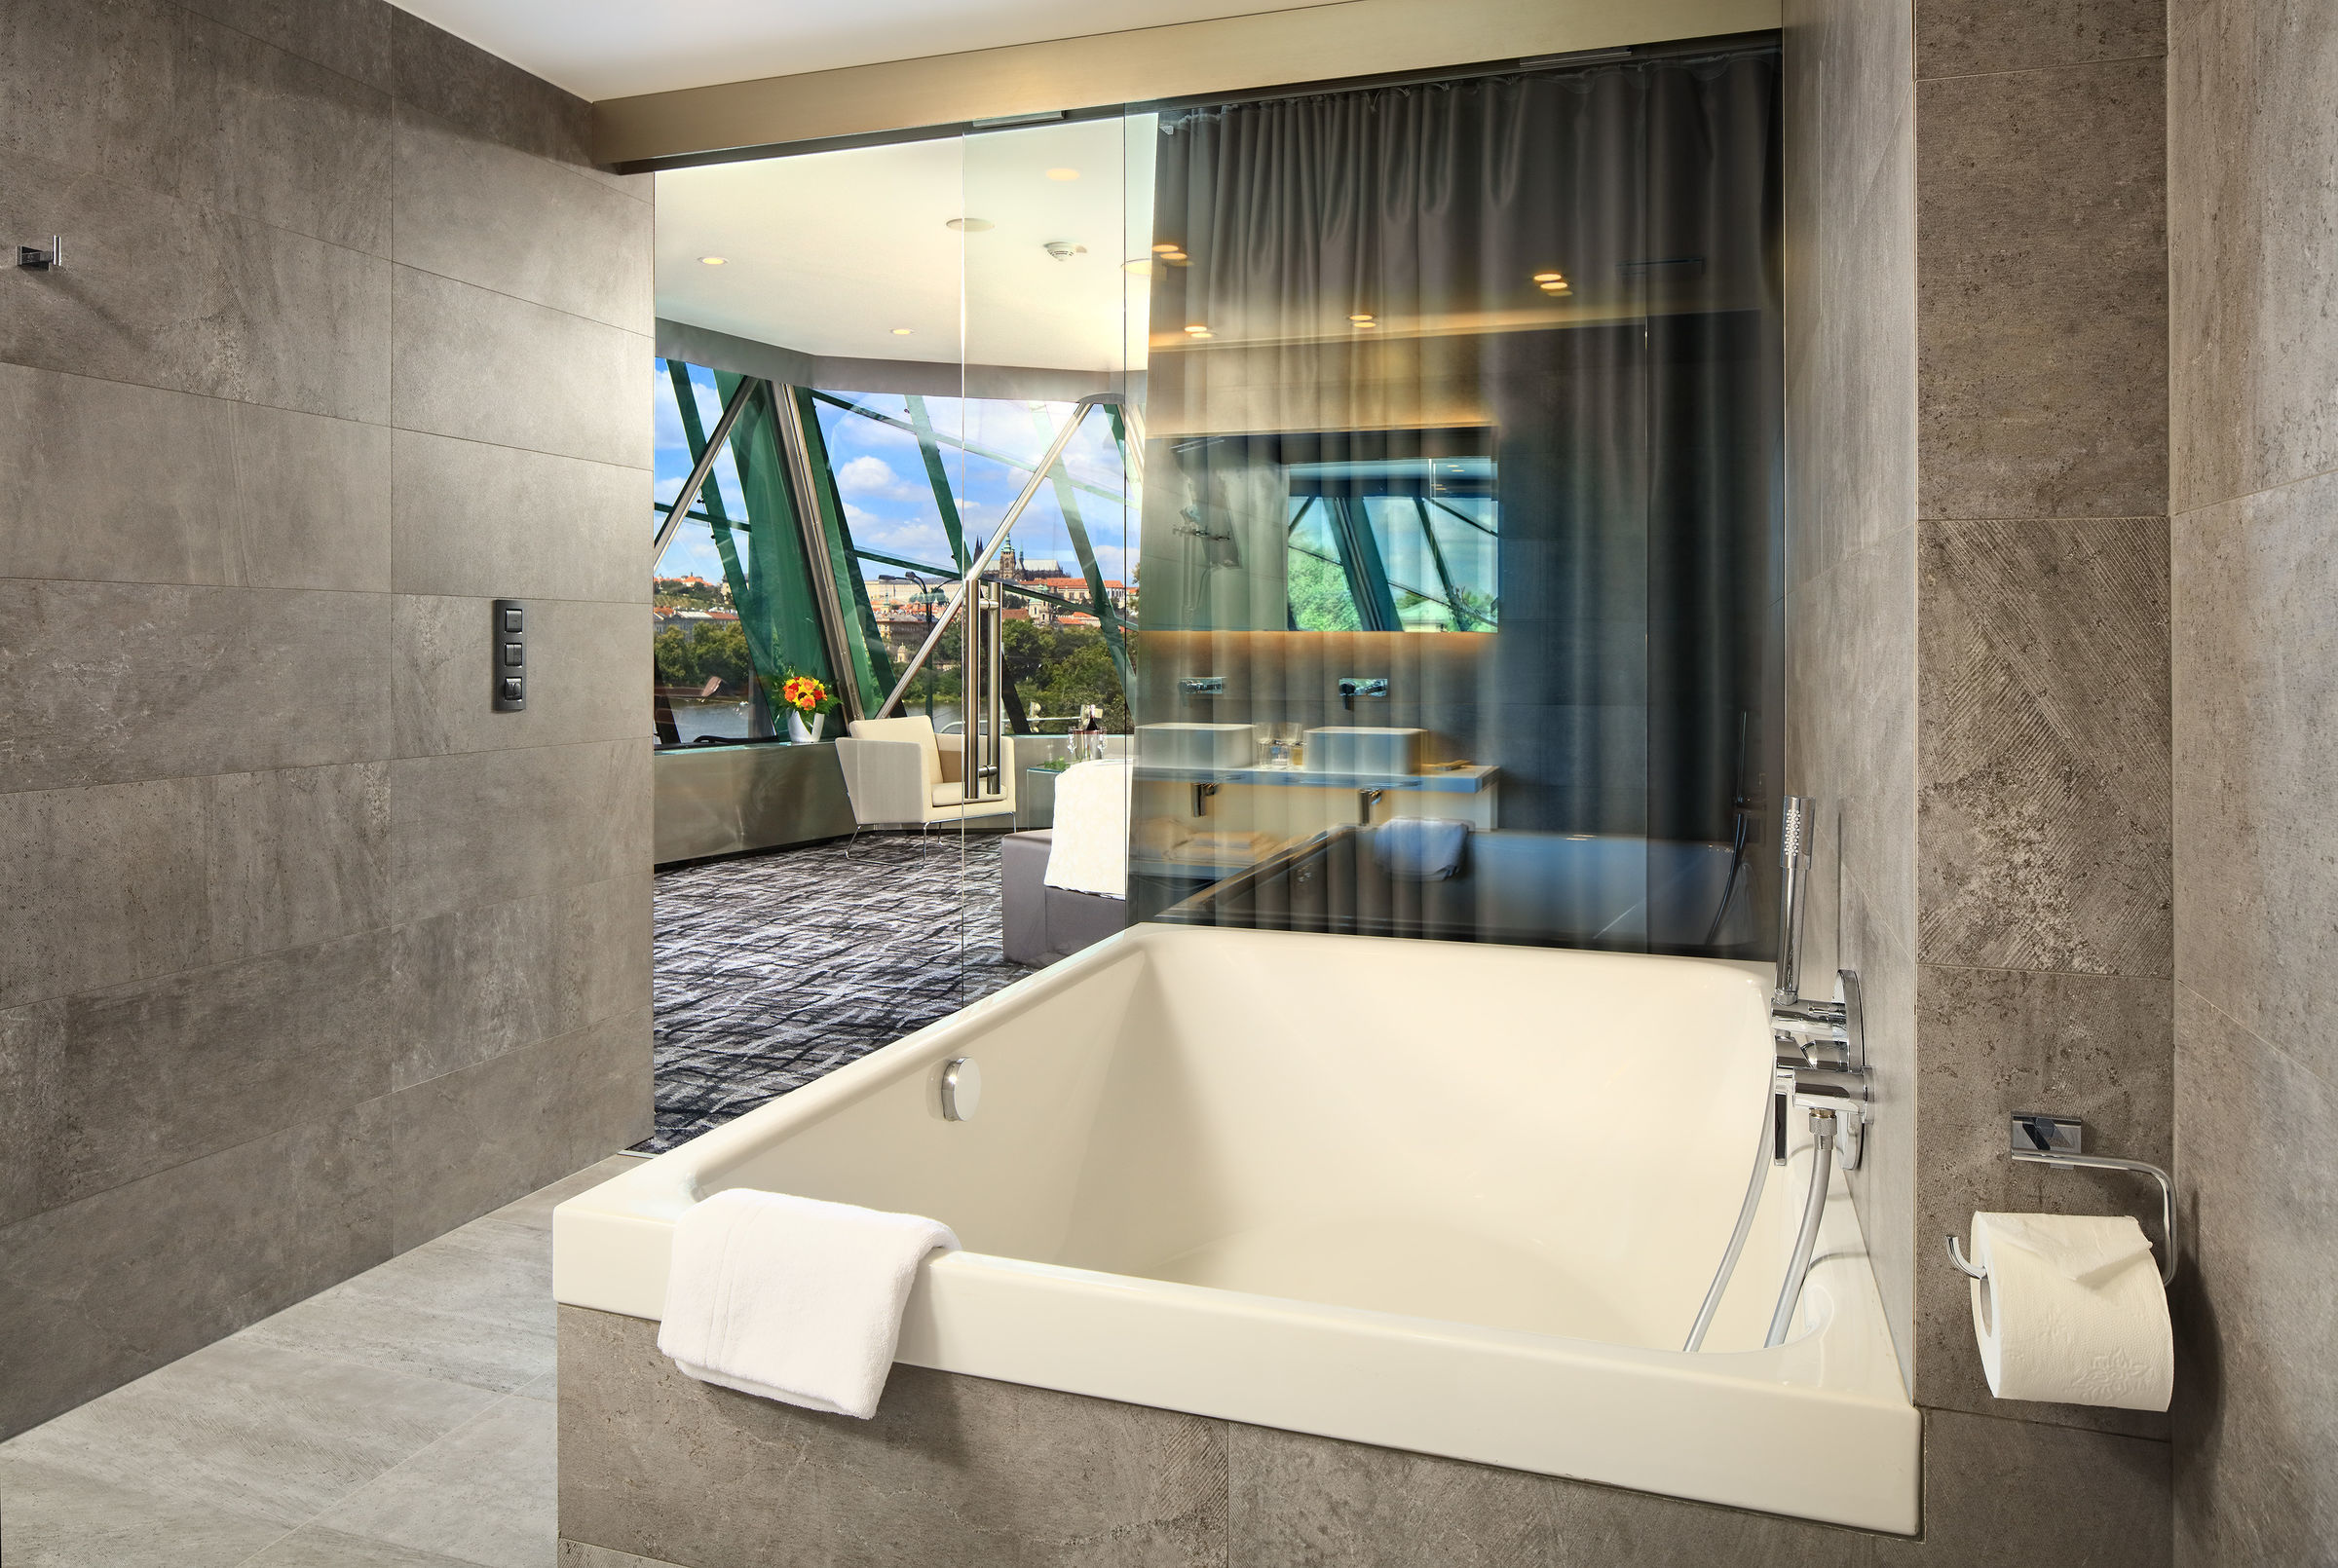 This bathroom is equipped with a wall-mounted Lineare OHM trimset basin two-hole mixer. It also sports the Rainshower Icon hand shower and the Skate Cosmopolitan: the solution for a clean and fresh WC at the push of a button.